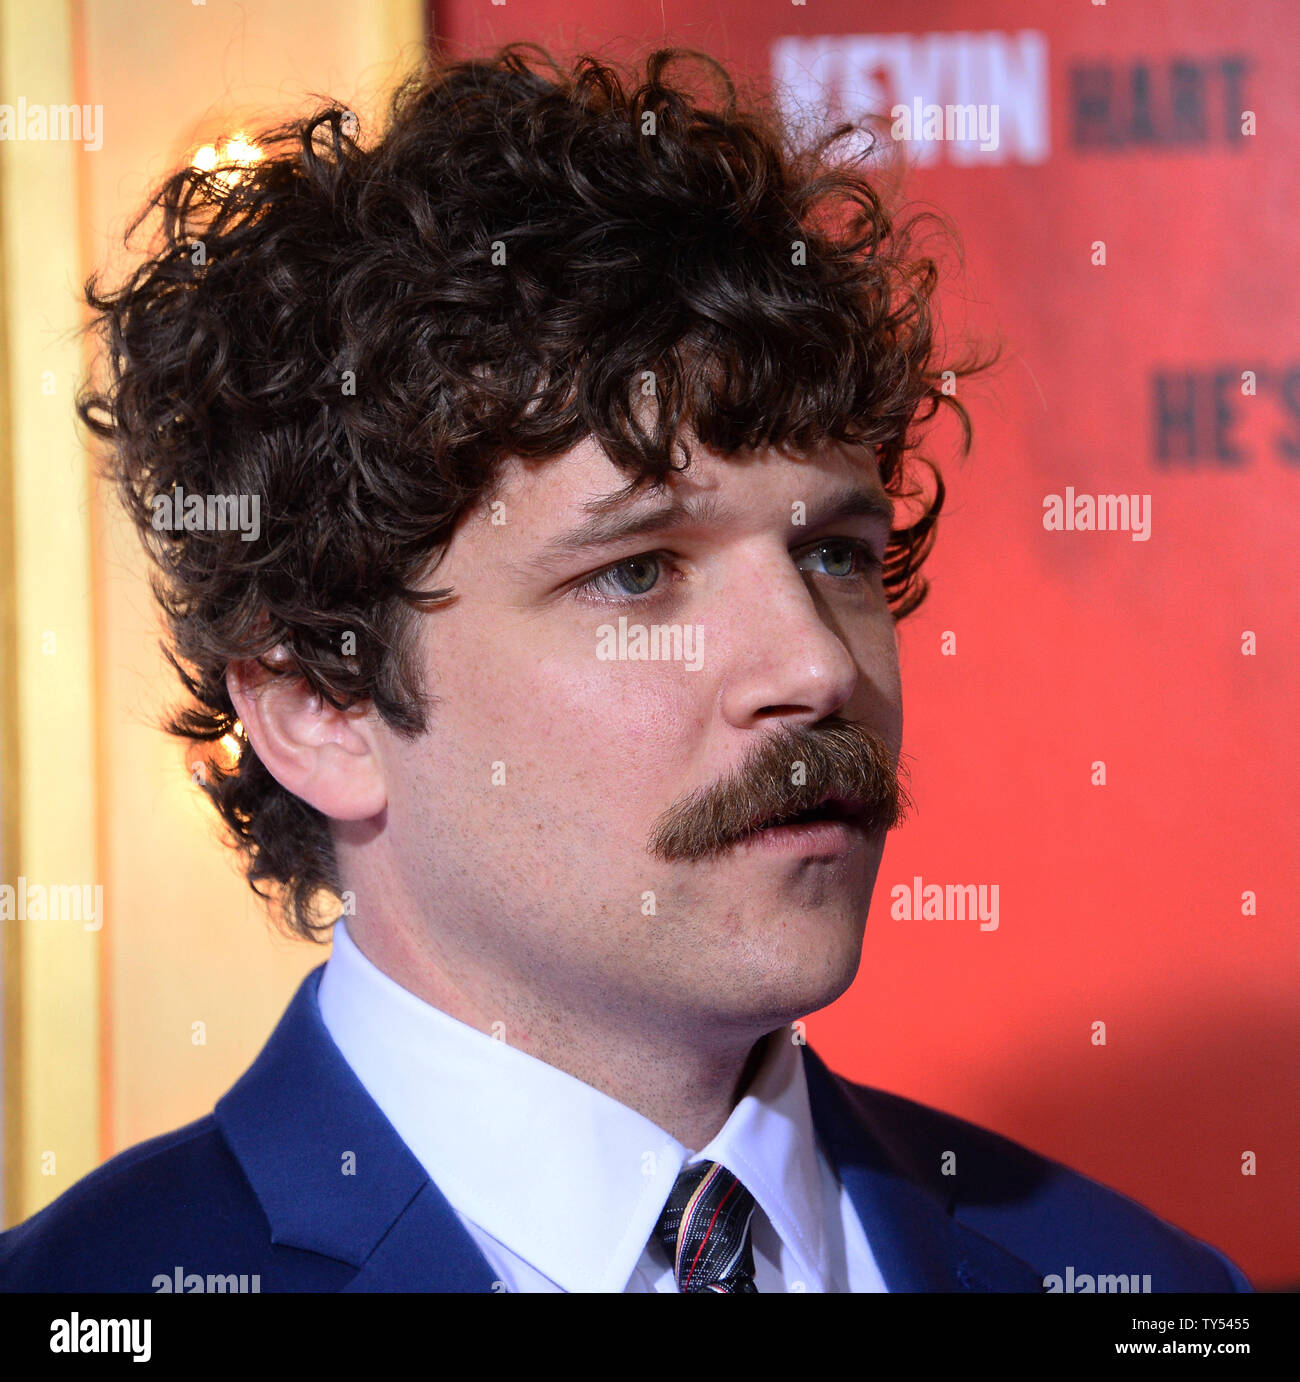 Wedding Ringer Cast.Cast Member Dan Gill Attends The Premiere Of The Motion Picture